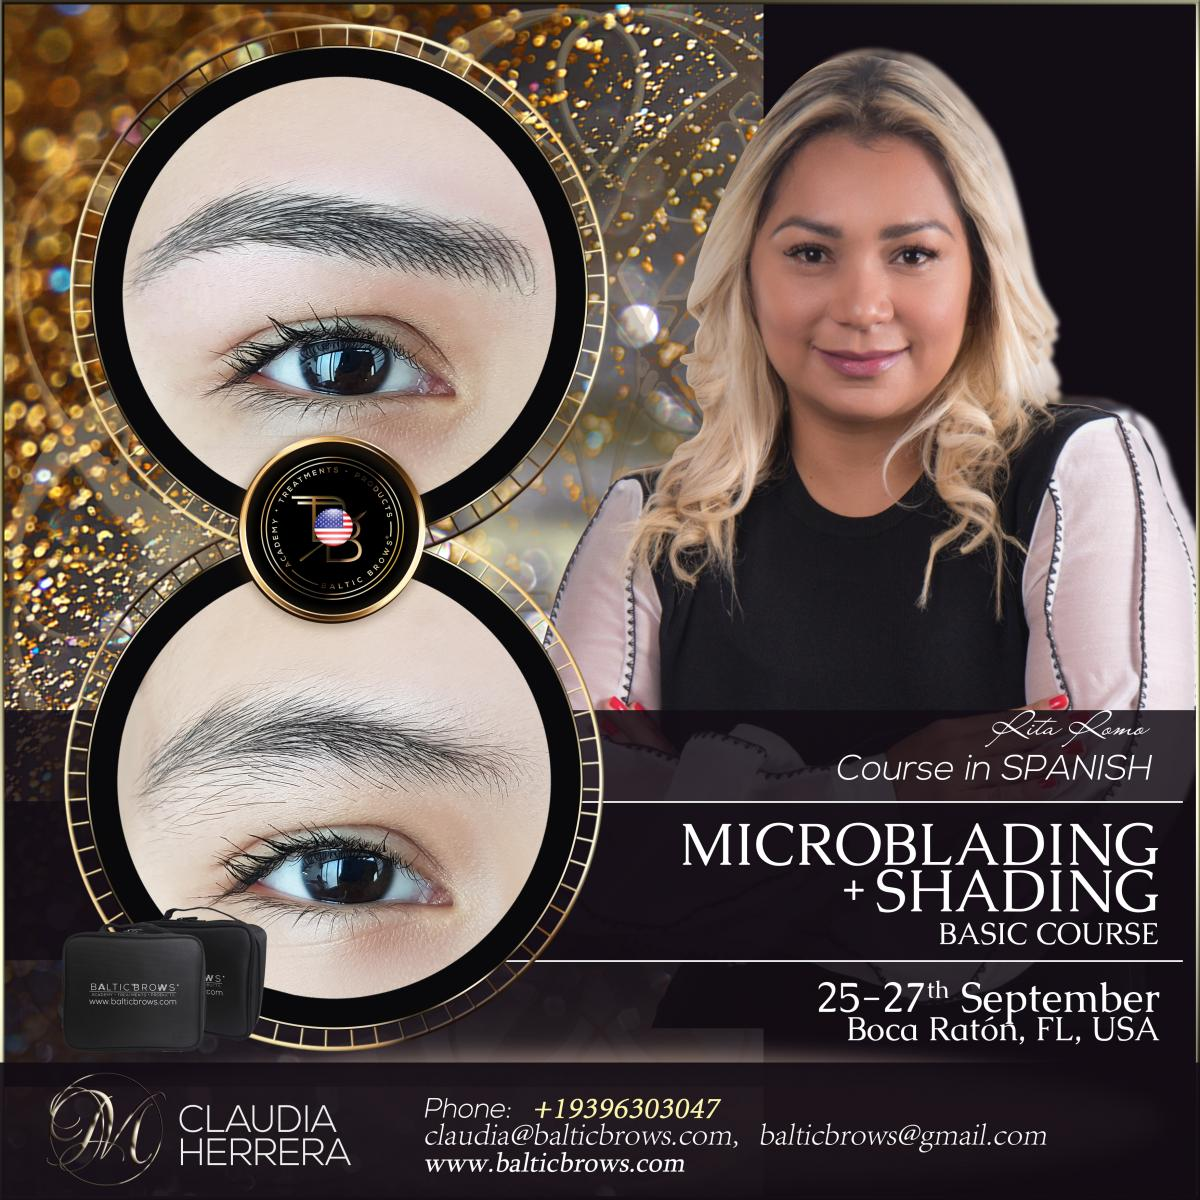 Microblading and shading basic class